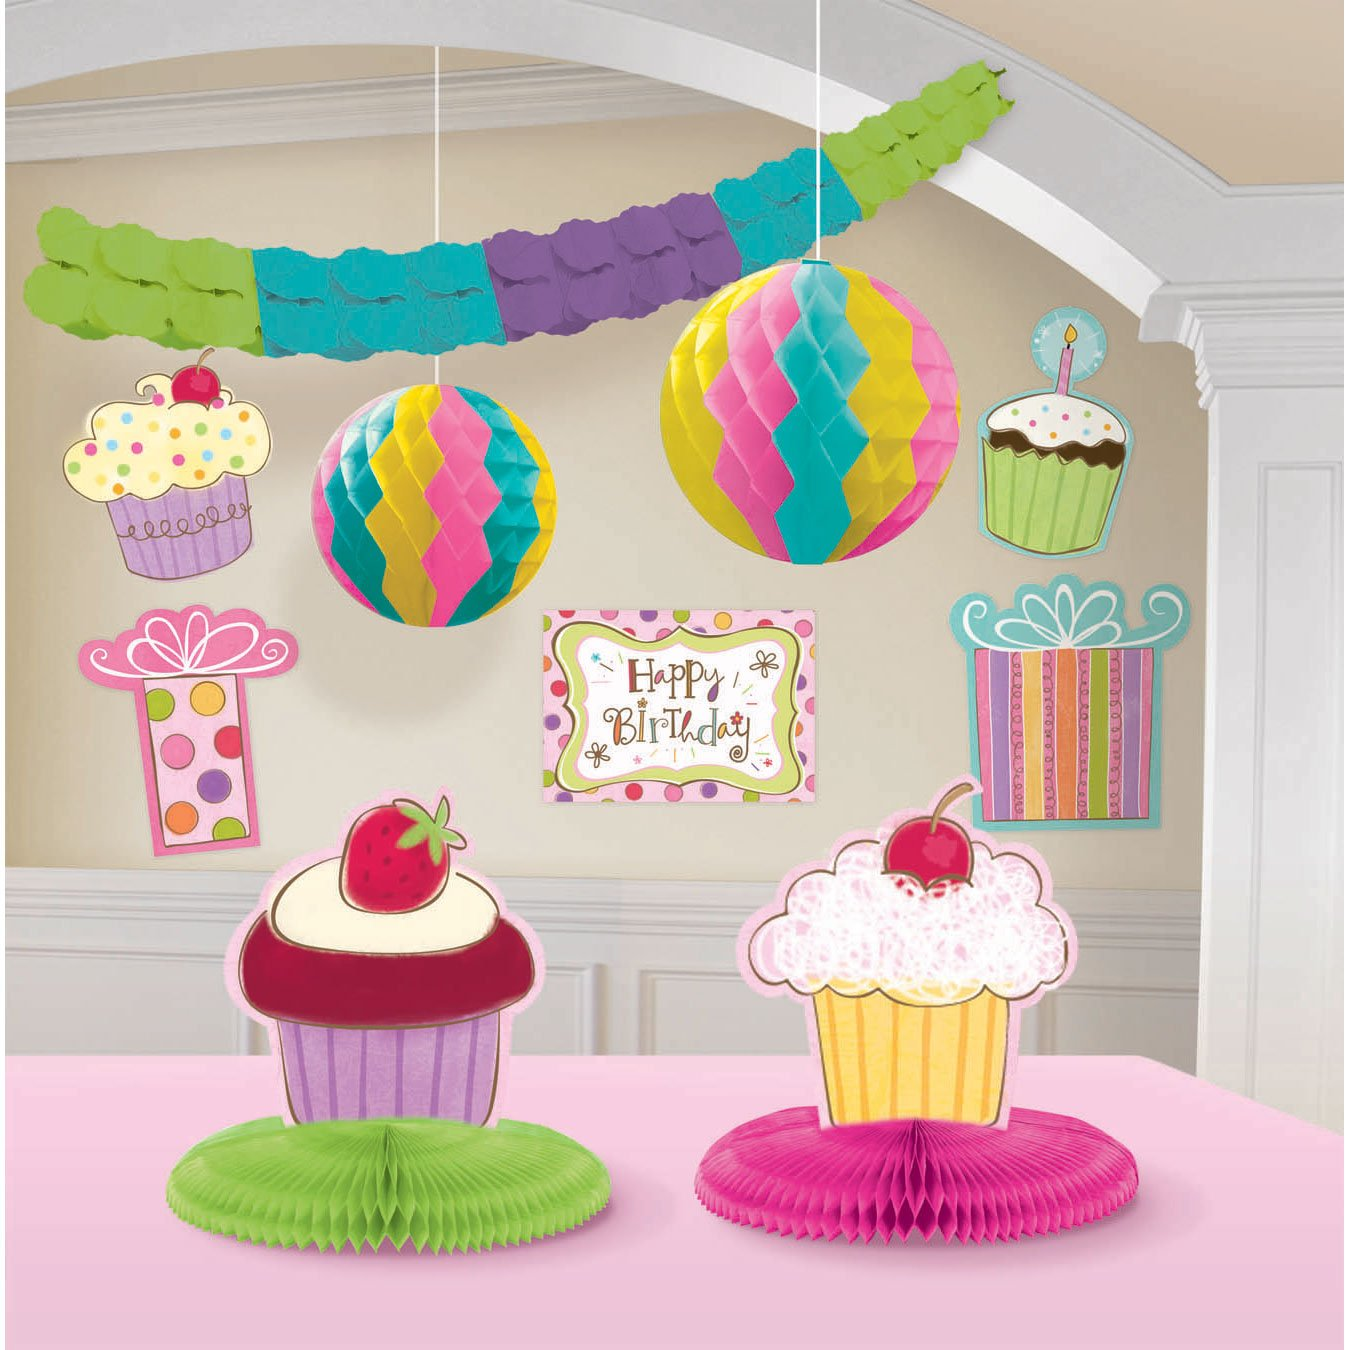 Amscan International Sweet Stuff Party Room Decorating Kit, Pack of 10 249672